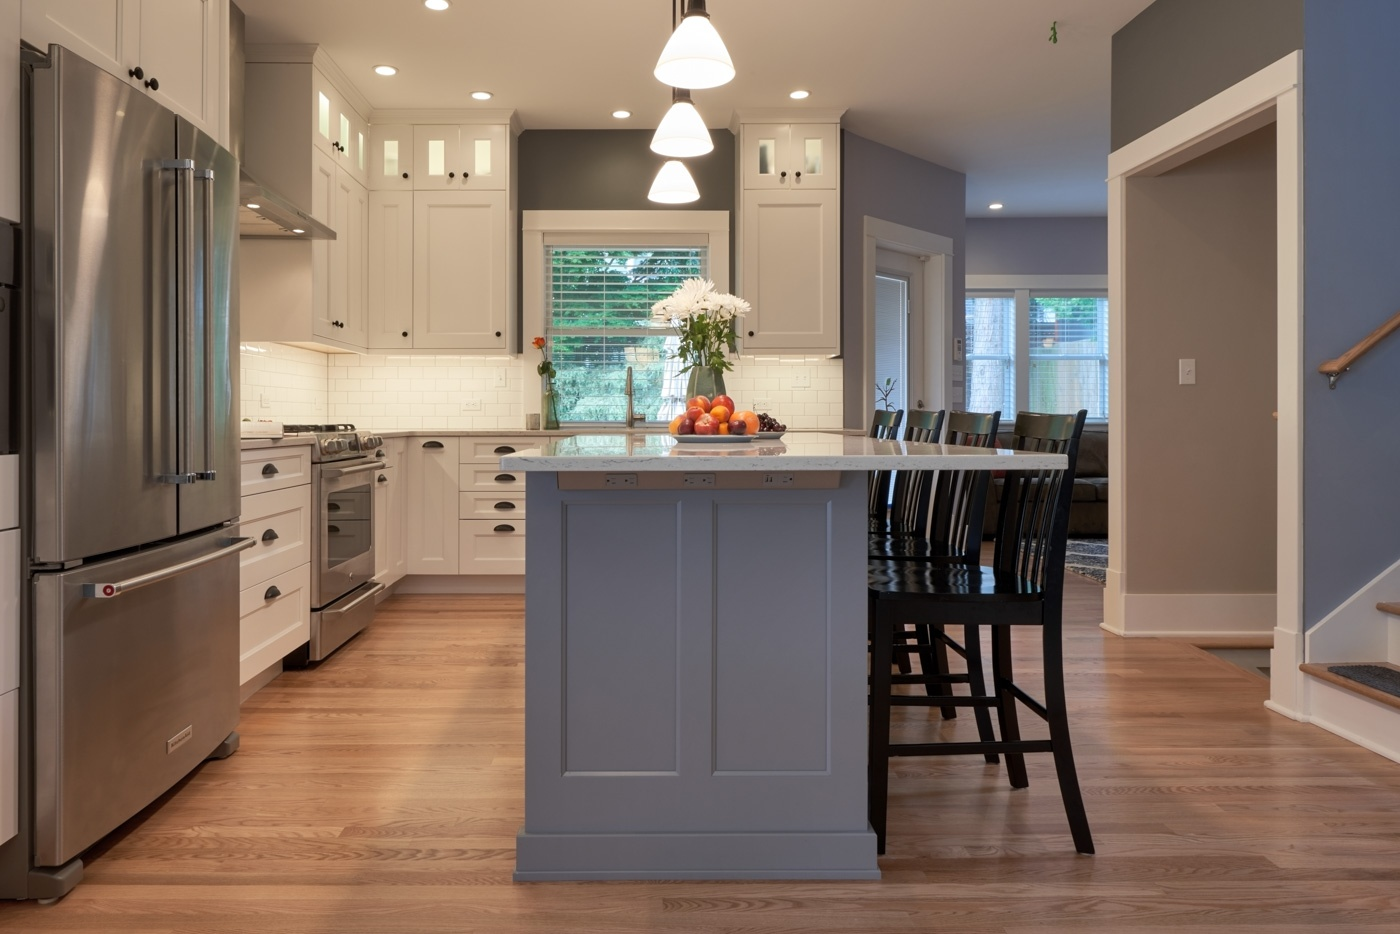 Redesign Your Existing Home